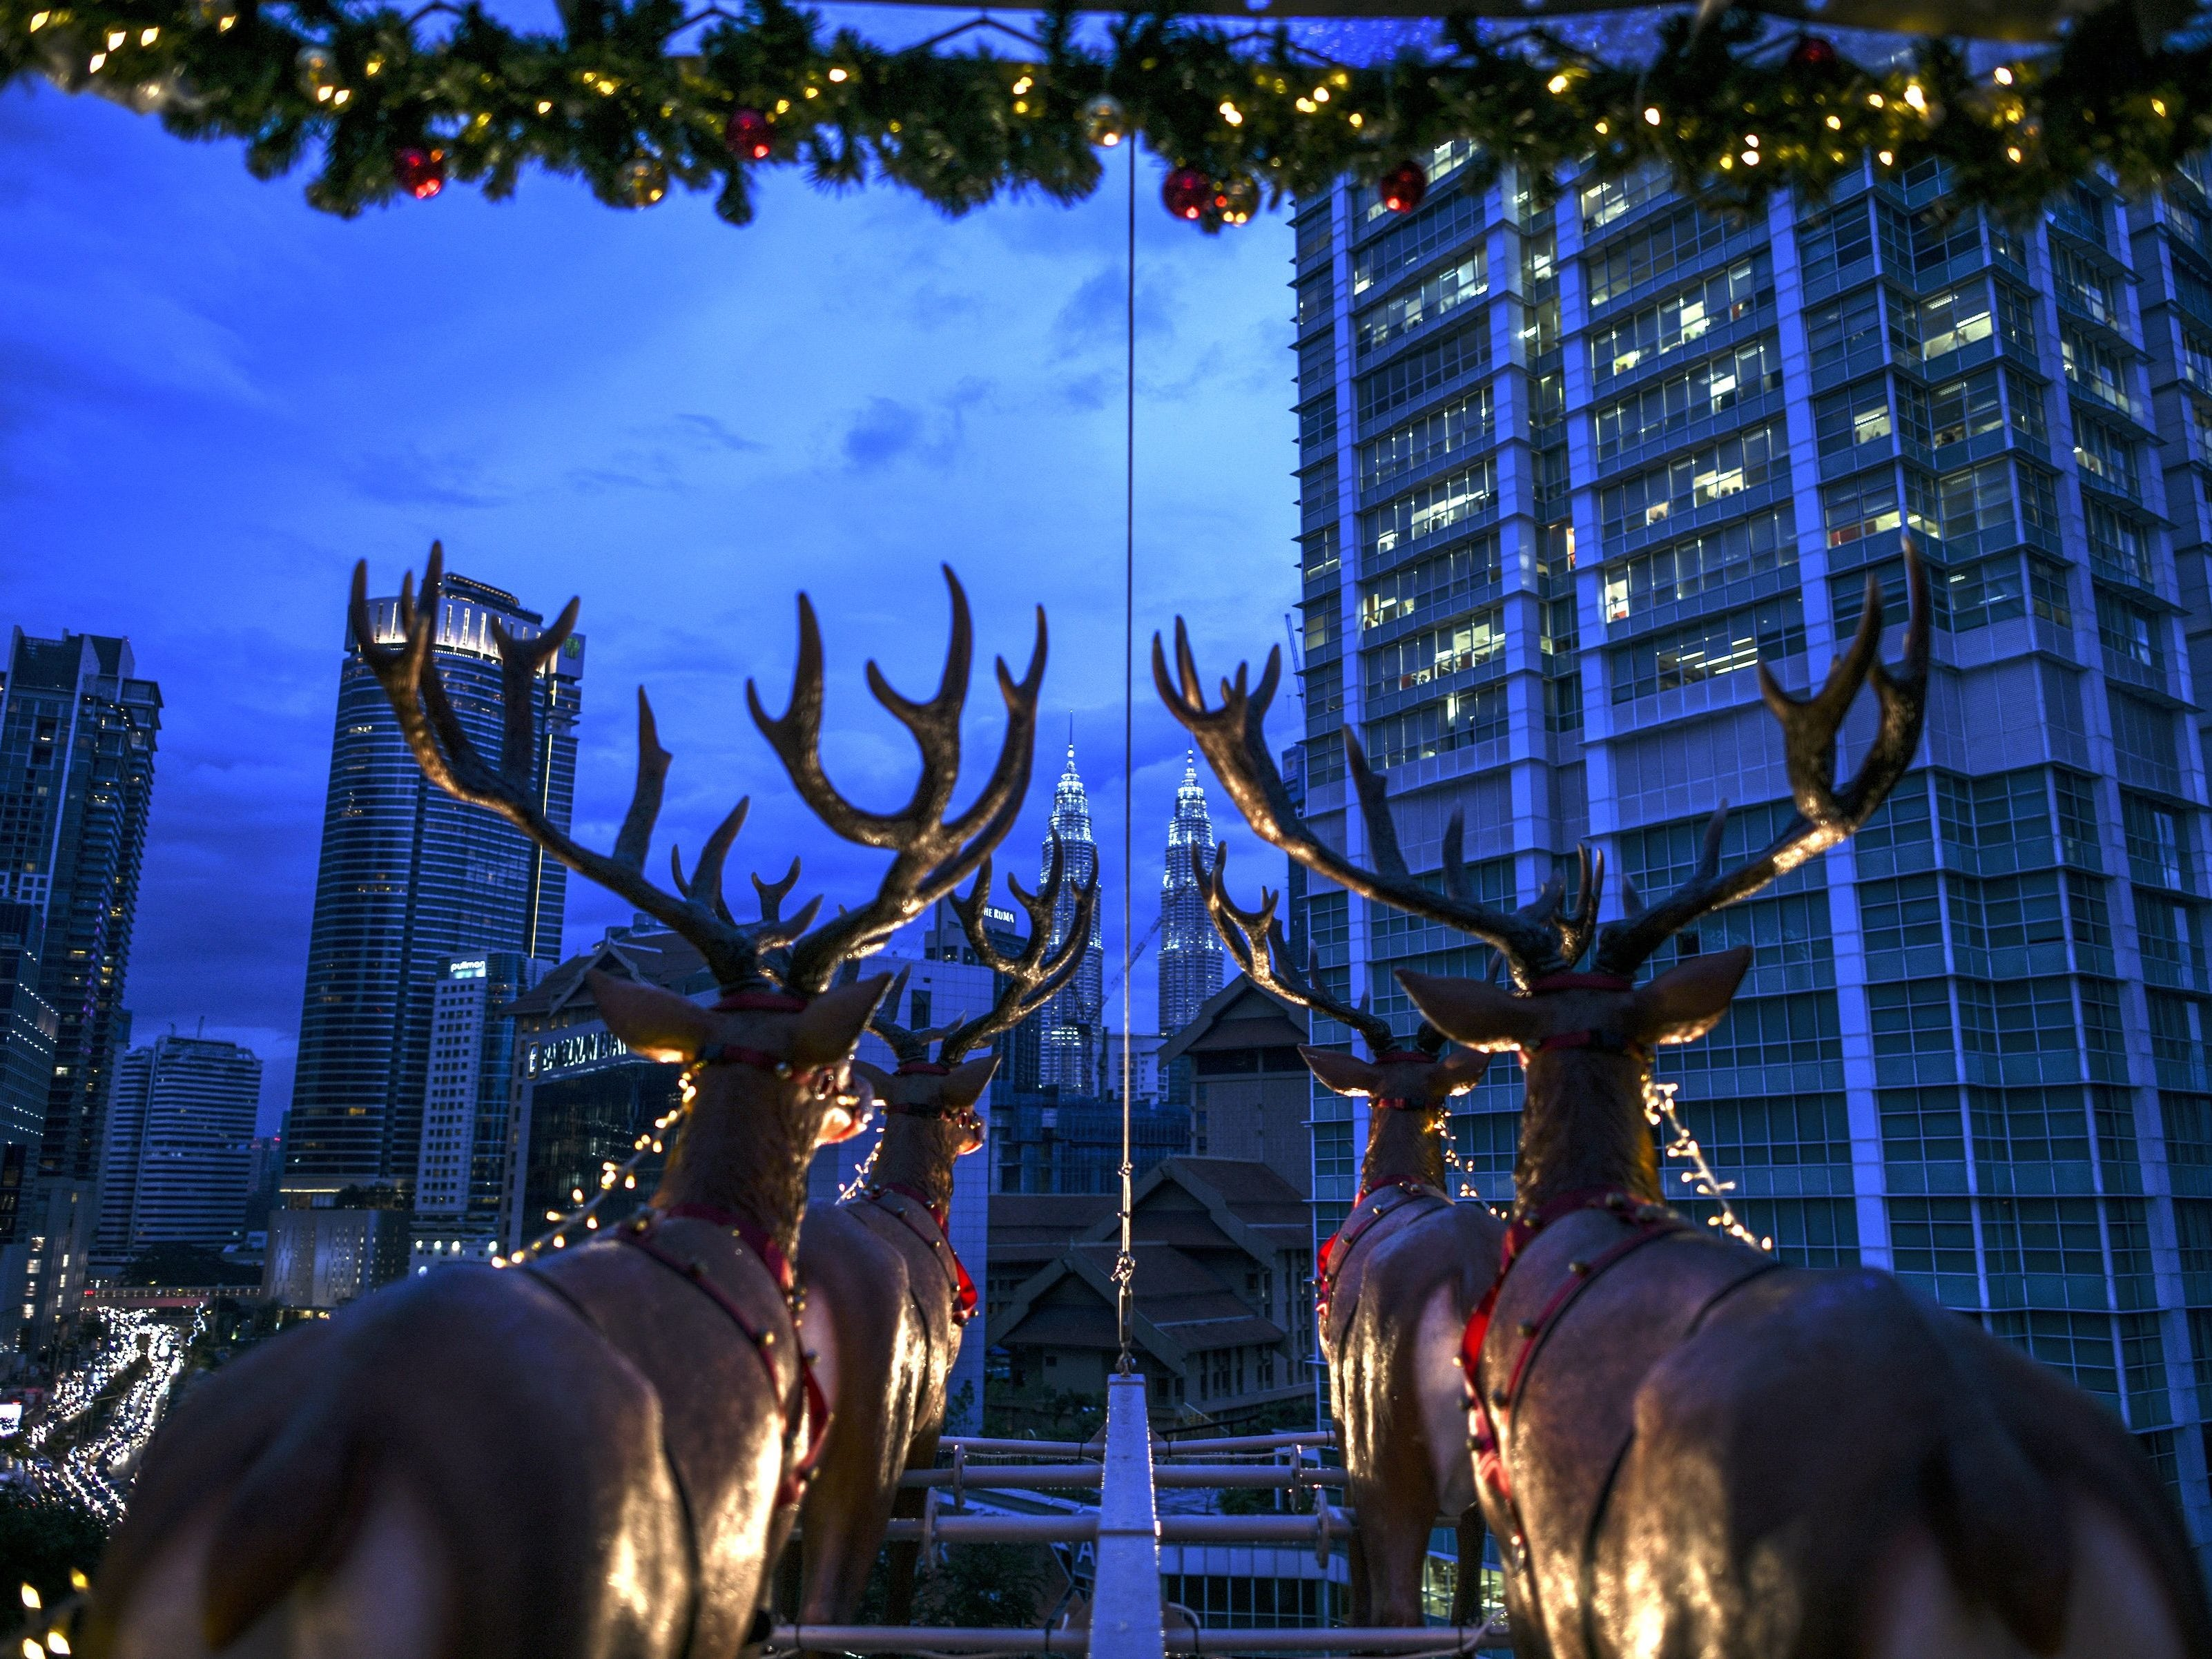 A hanging restaurant is shown on Dec. 5, 2018. It is suspended by a crane overlooking the skyline of Kuala Lumpur, and is inspired by Santa Claus traveling on a sleigh with reindeer for a Christmas season promotion. Strapped into rollercoaster-like seats, the Santa in the Sky patrons dine and drink next to prancing reindeer models and a mannequin of jolly St Nicholas while busy traffic streams nearby below.